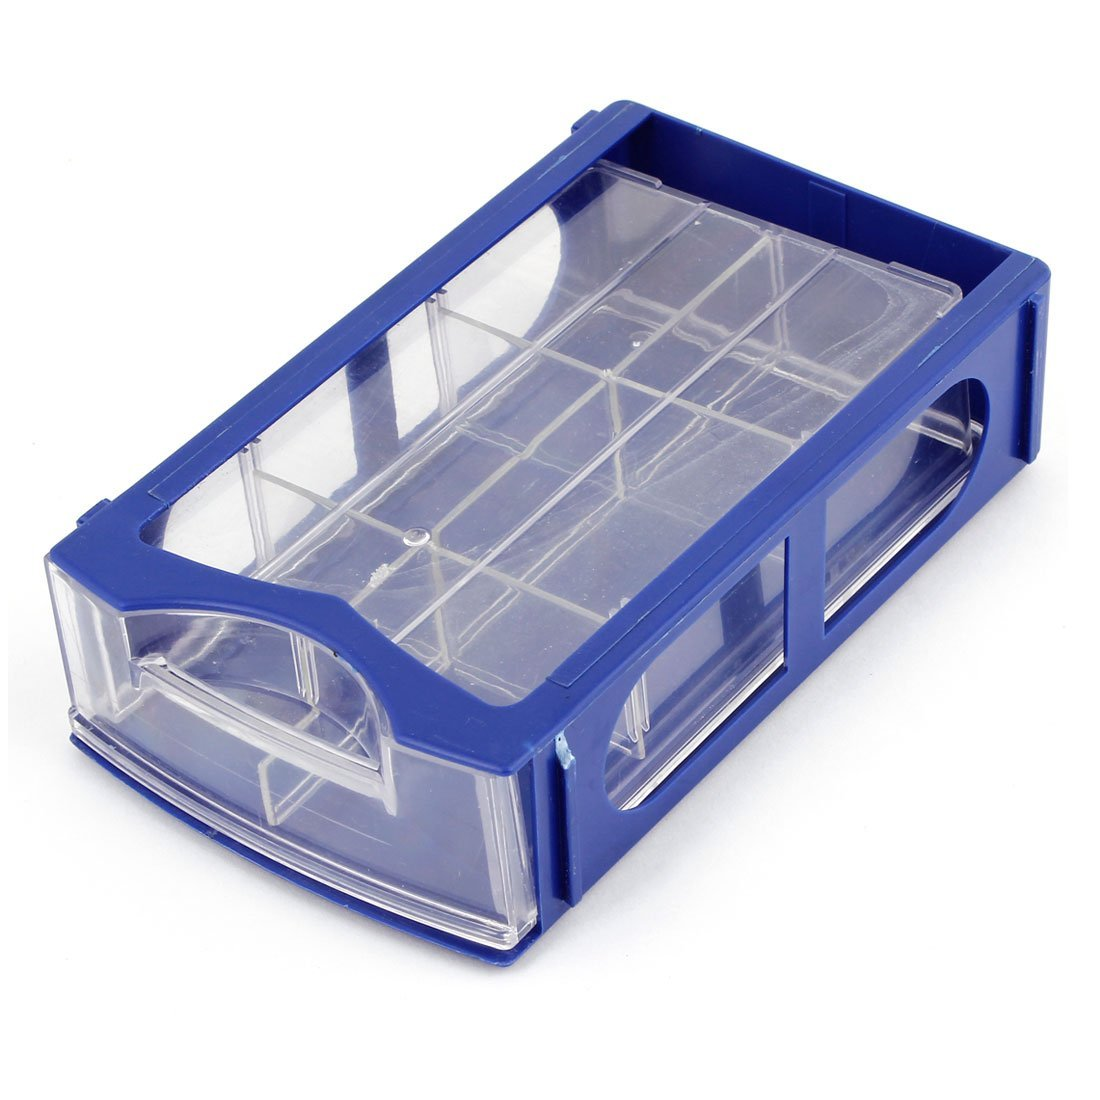 Aexit Plastic 6 Tool Organizers Separable Compartments Electronic Components Tool Boxes Storage Box